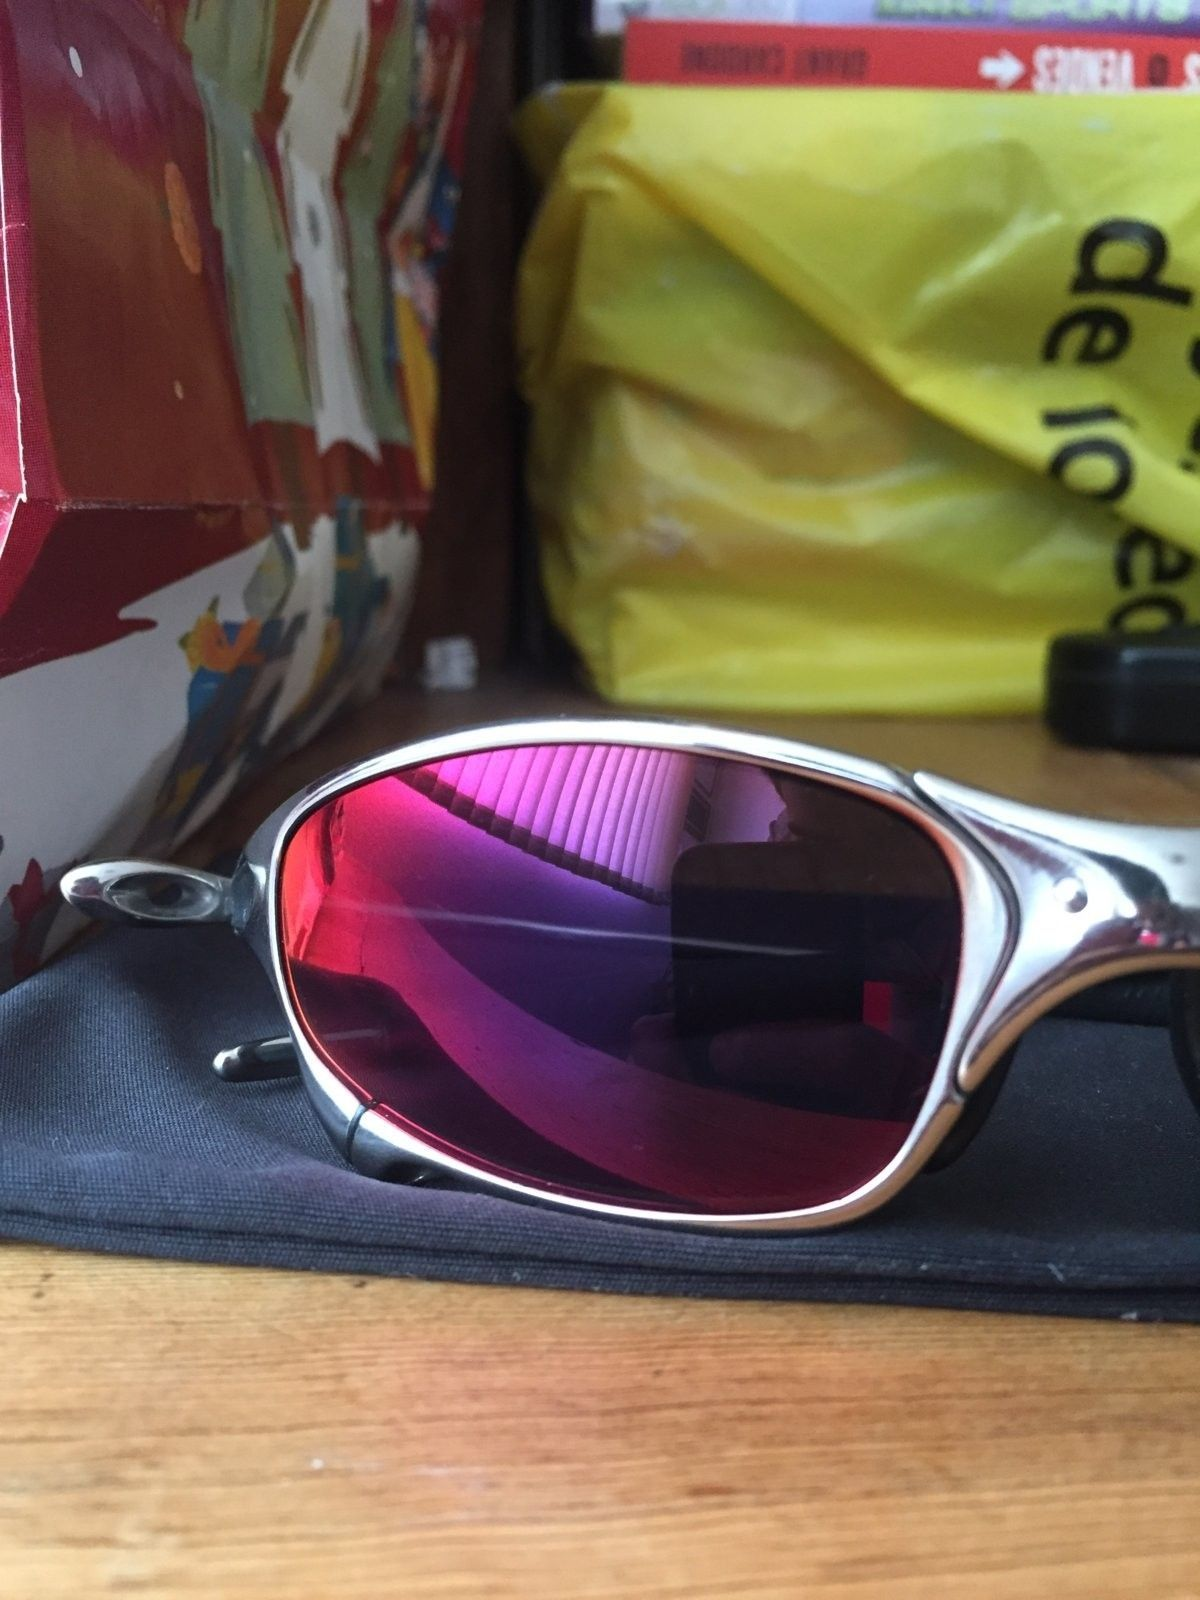 Ruby vs Torch vs LG Red Mirror Lenses - IMG_2690.JPG